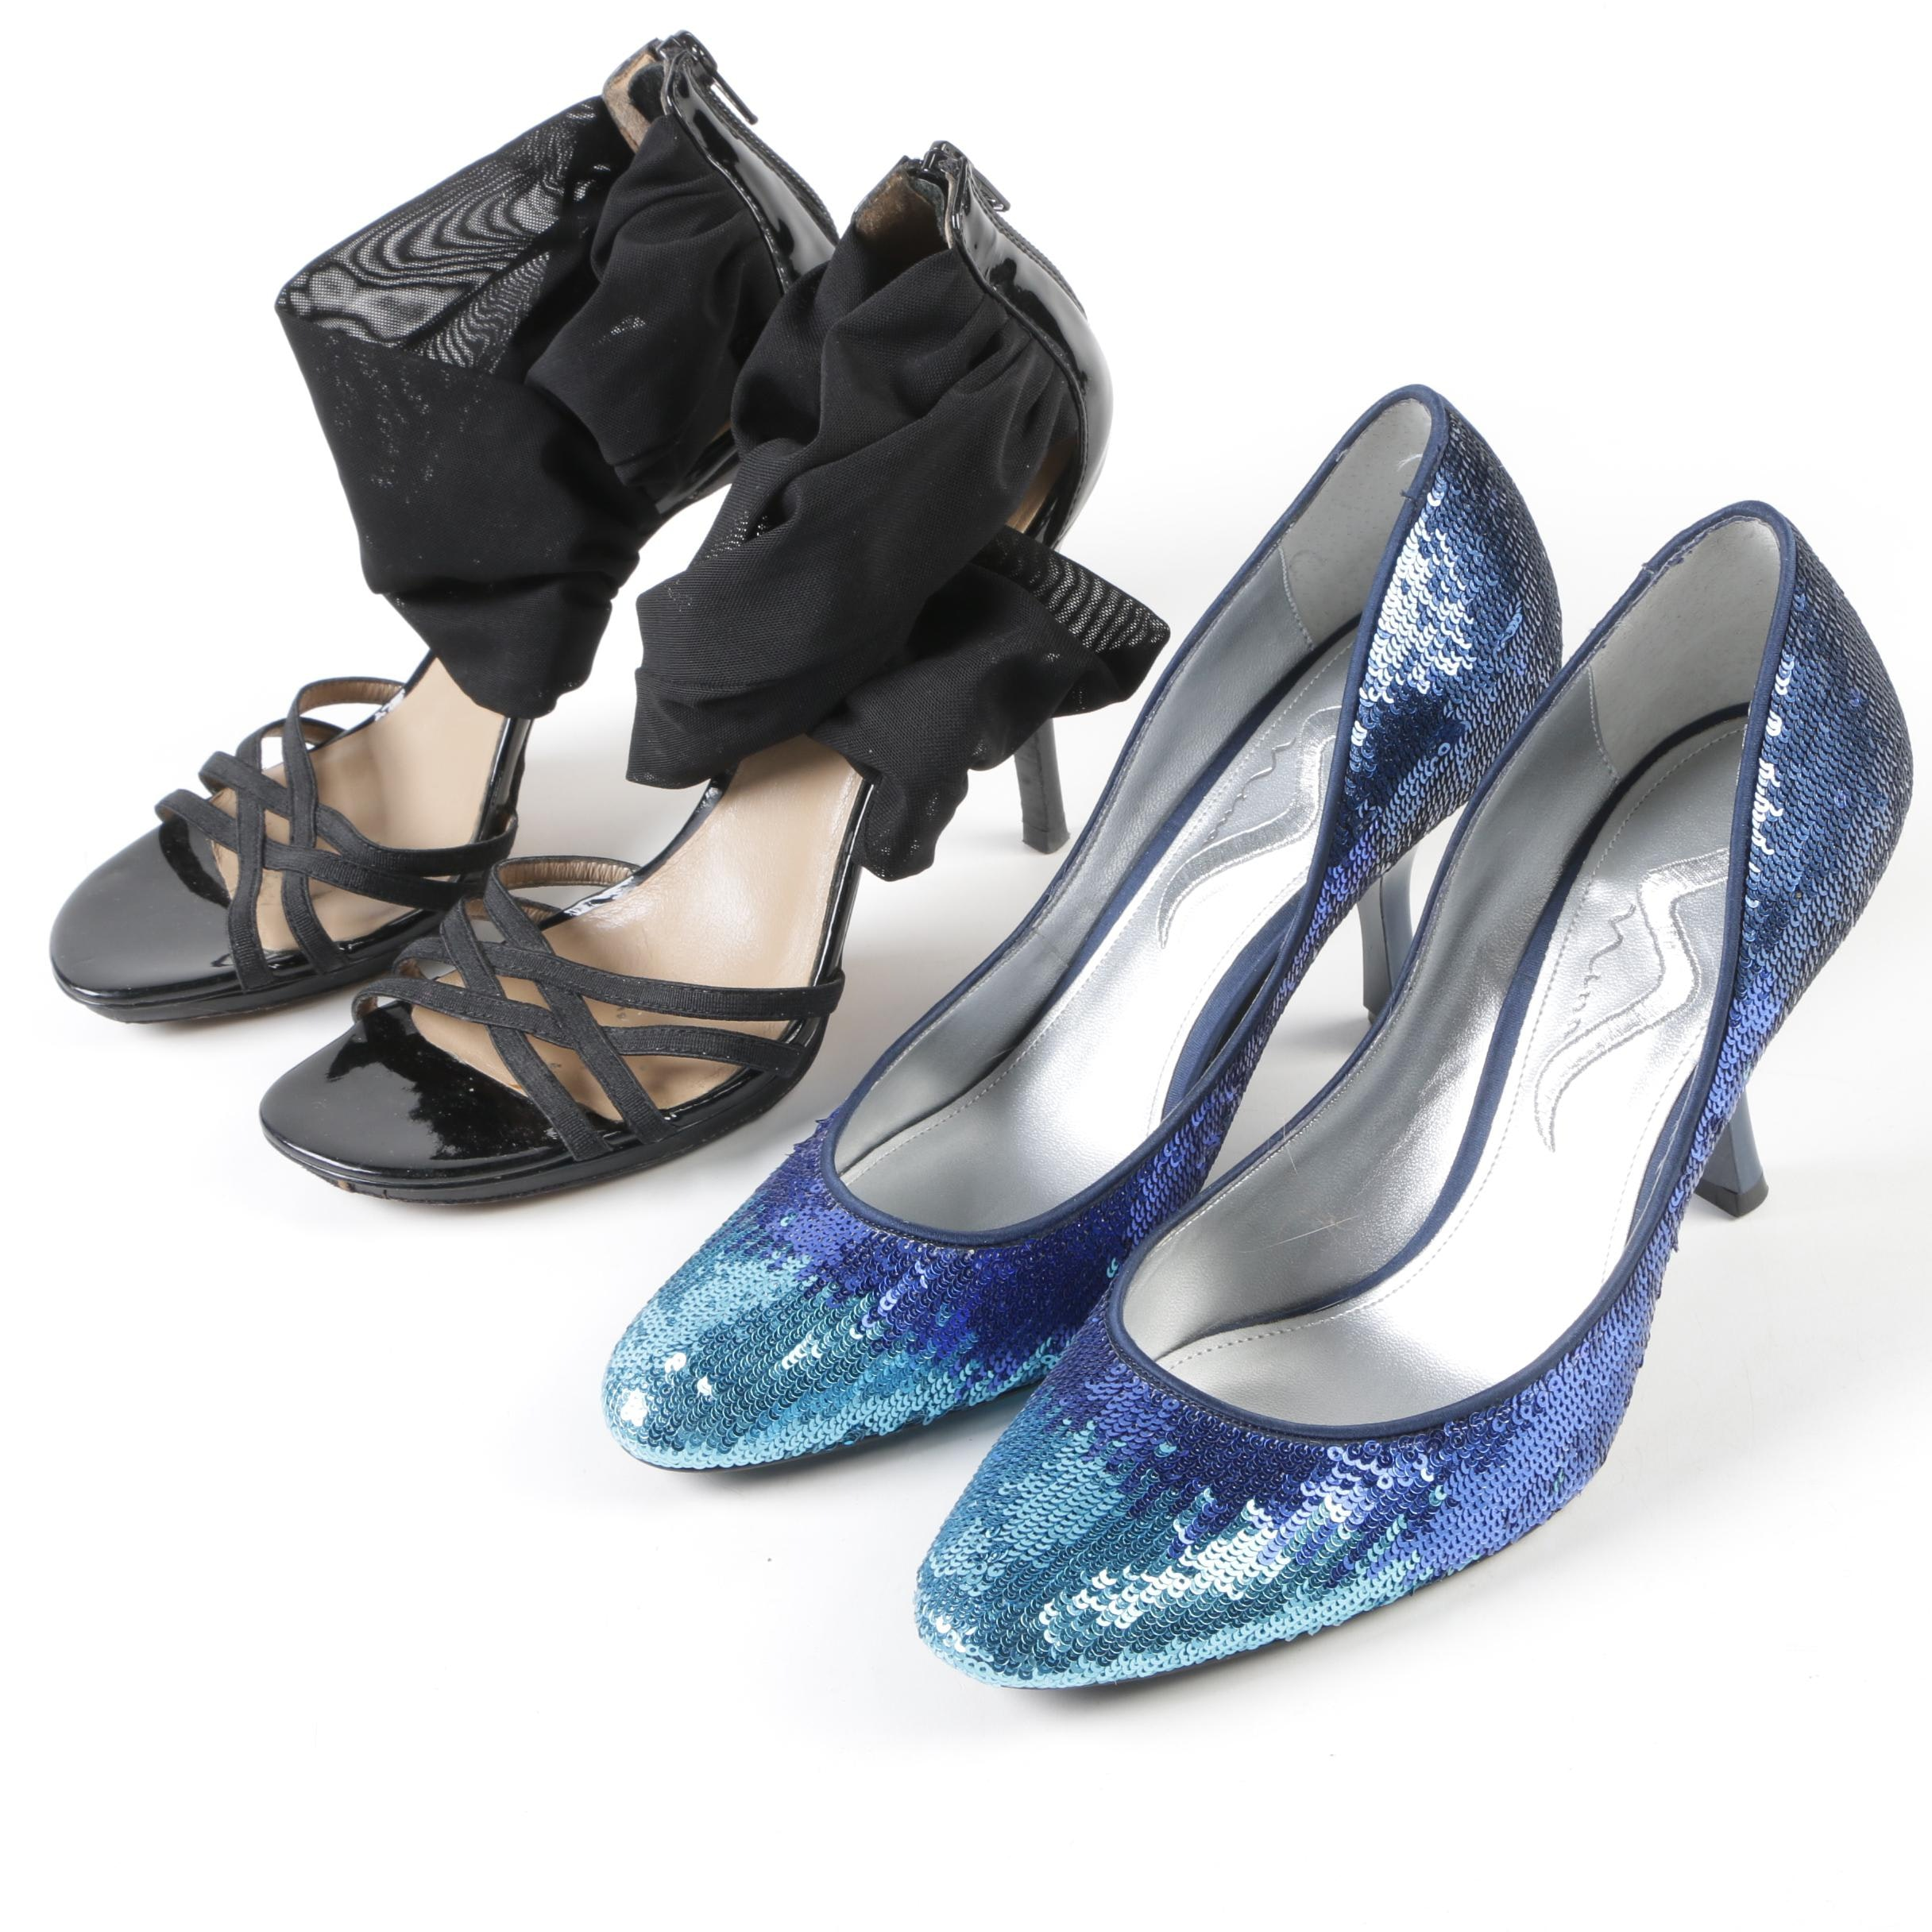 Nina Blue Sequin Pumps and Donald J Pliner Black Mesh and Patent Leather Sandals